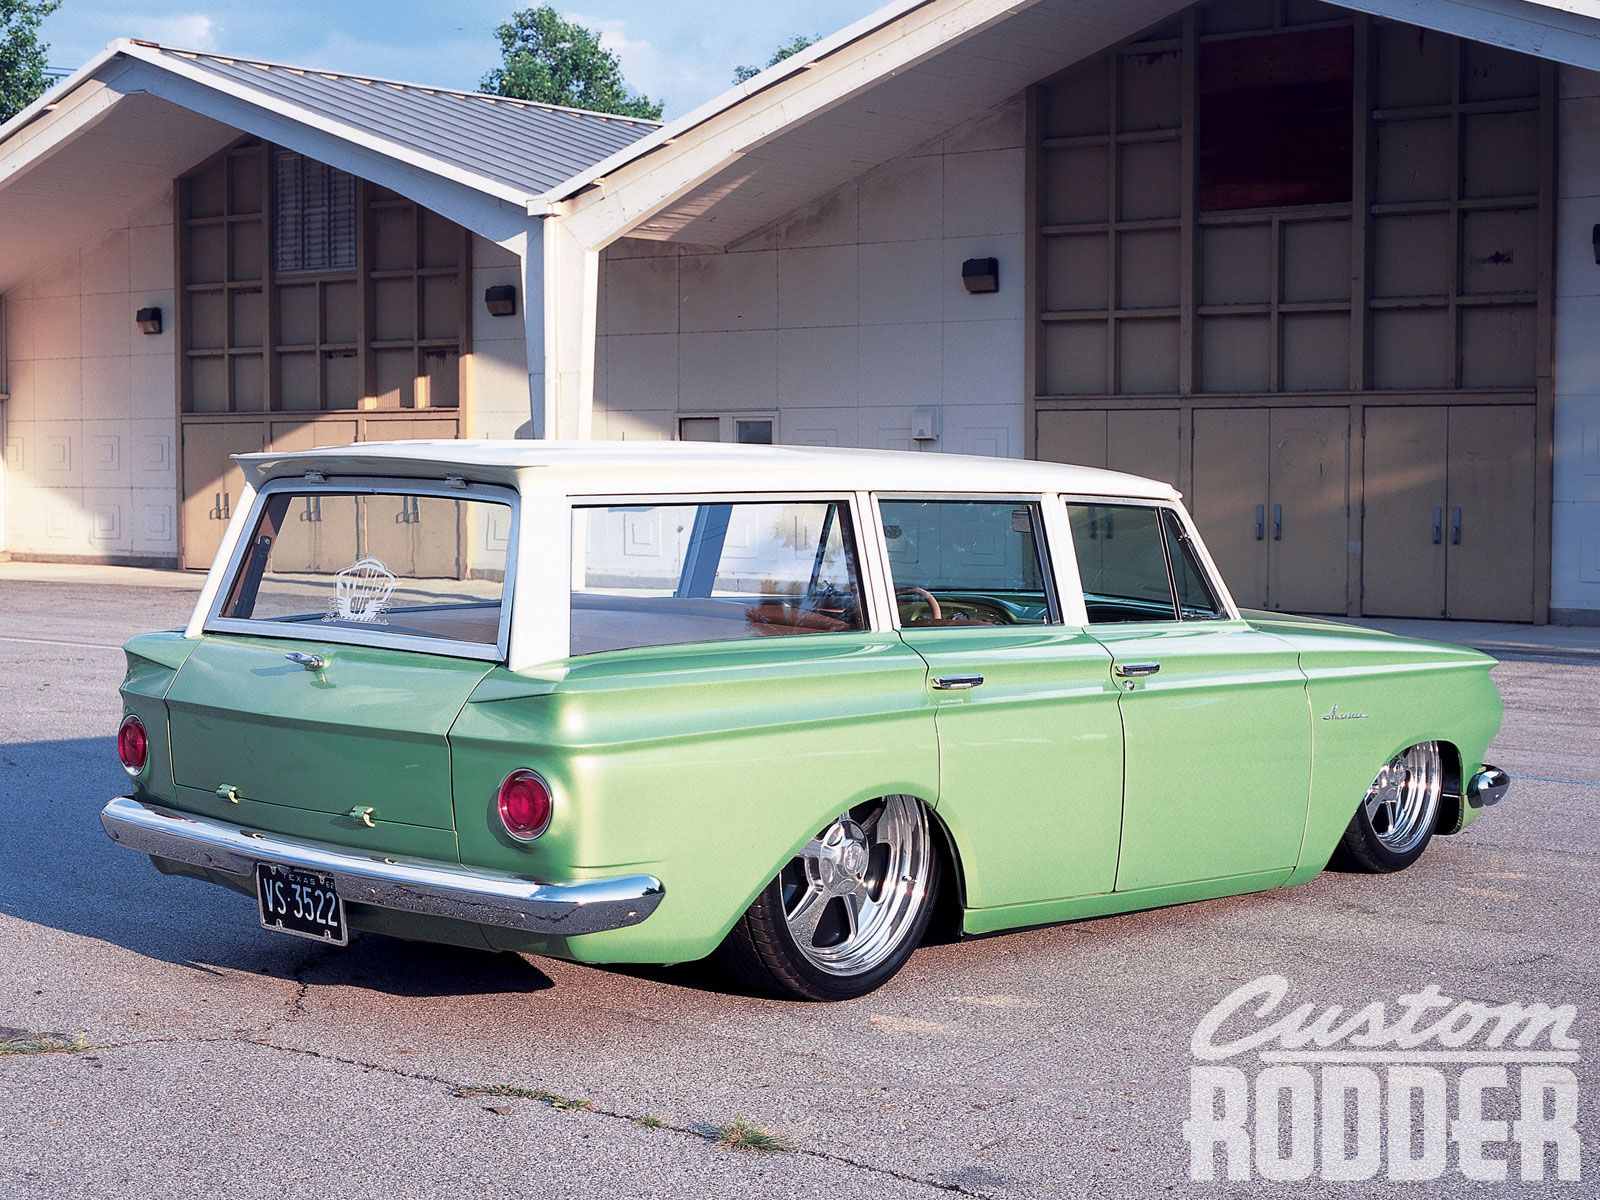 Learn about this modded 1962 nash rambler wagon in a distinctive hue of green from custom rodder magazine